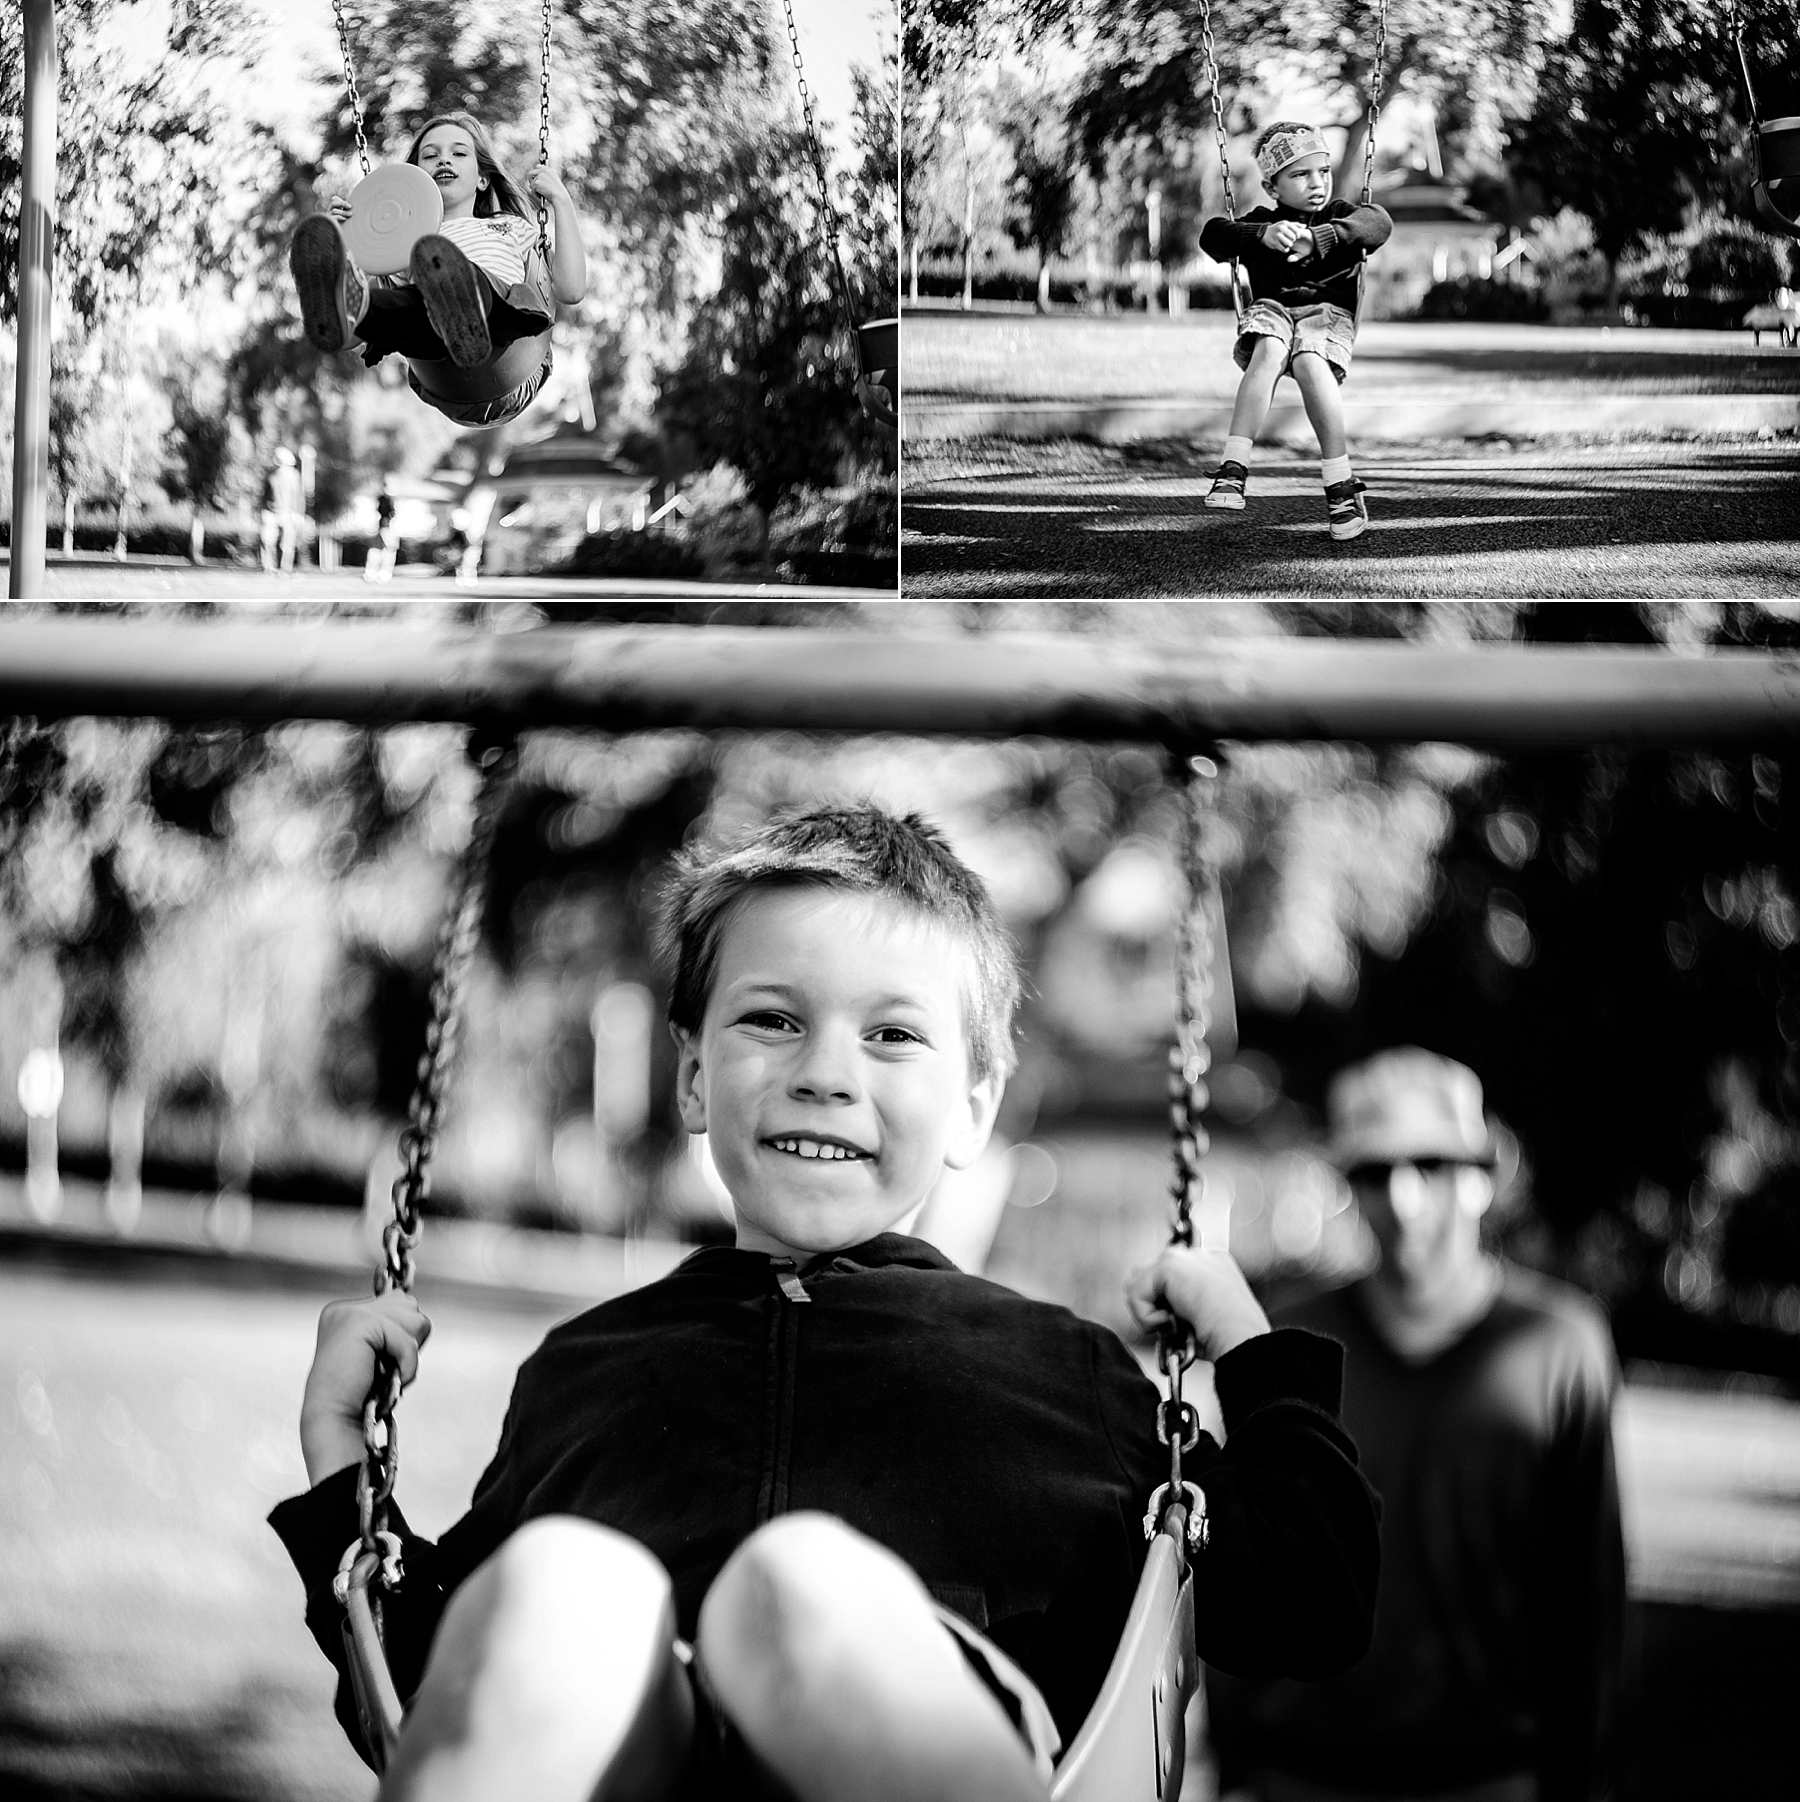 Black and white photos of children on a swing at a park in La Verne, CA